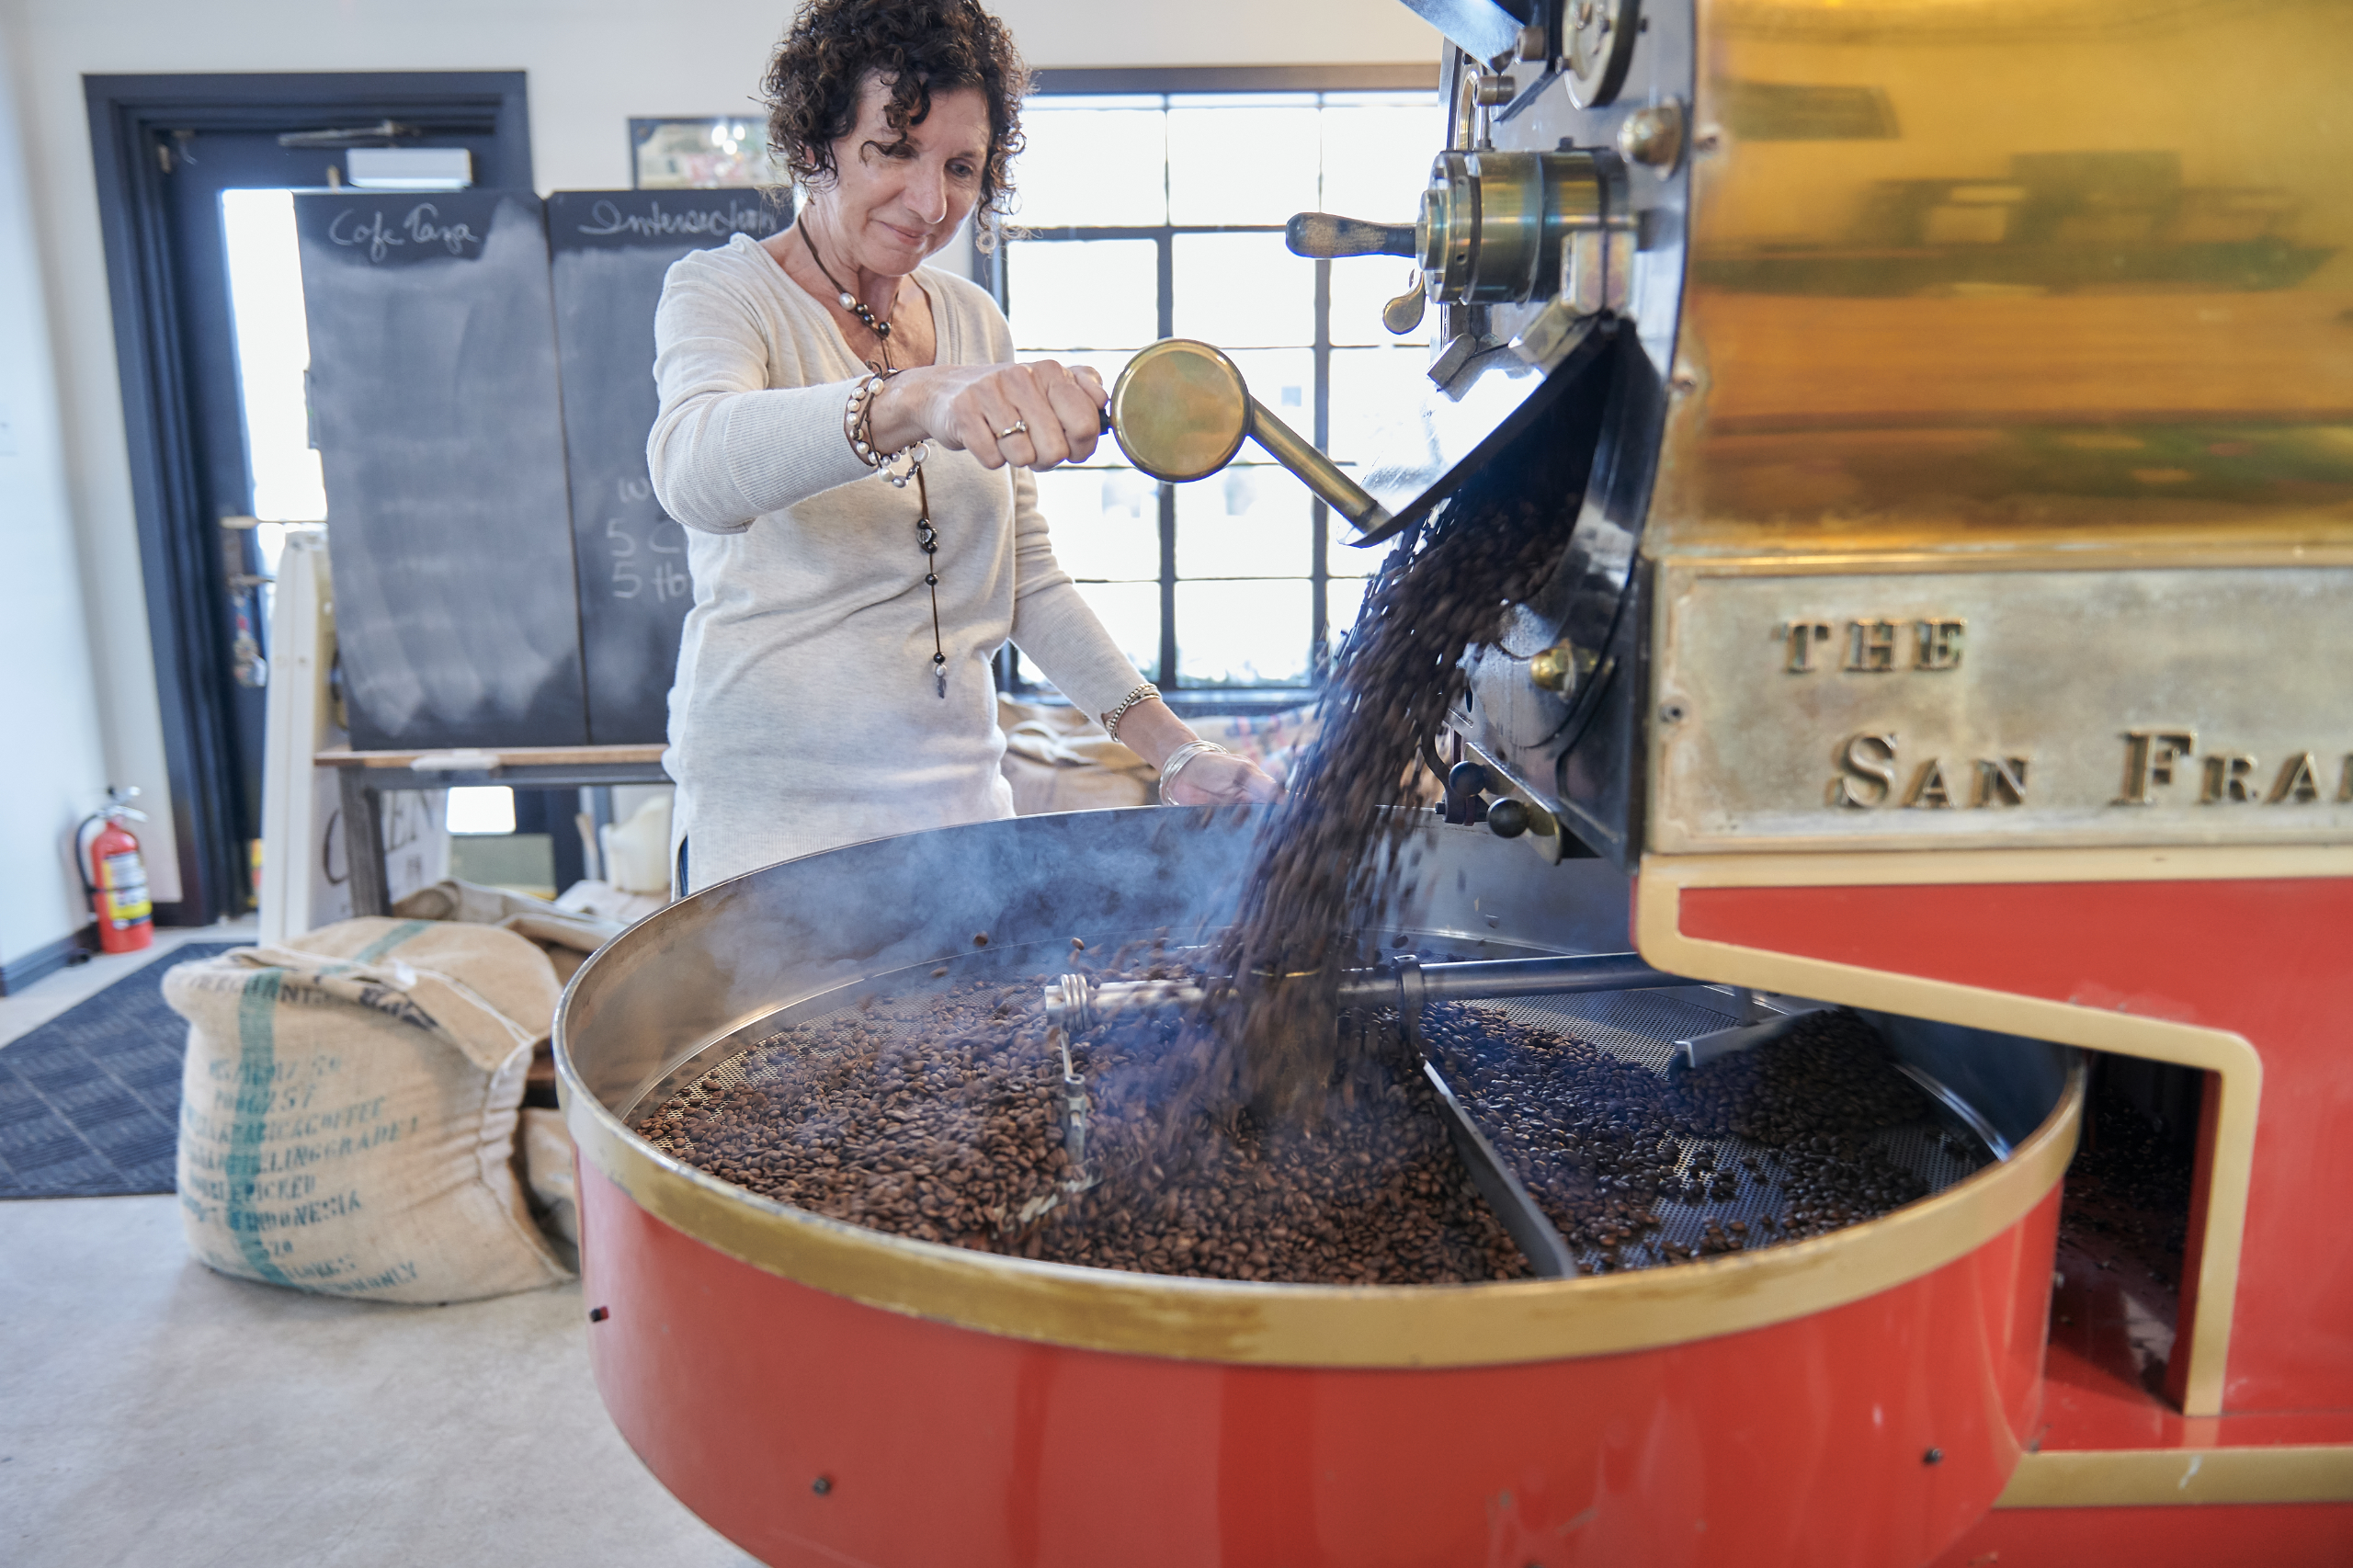 Kate pouring roasted beans from the roaster.